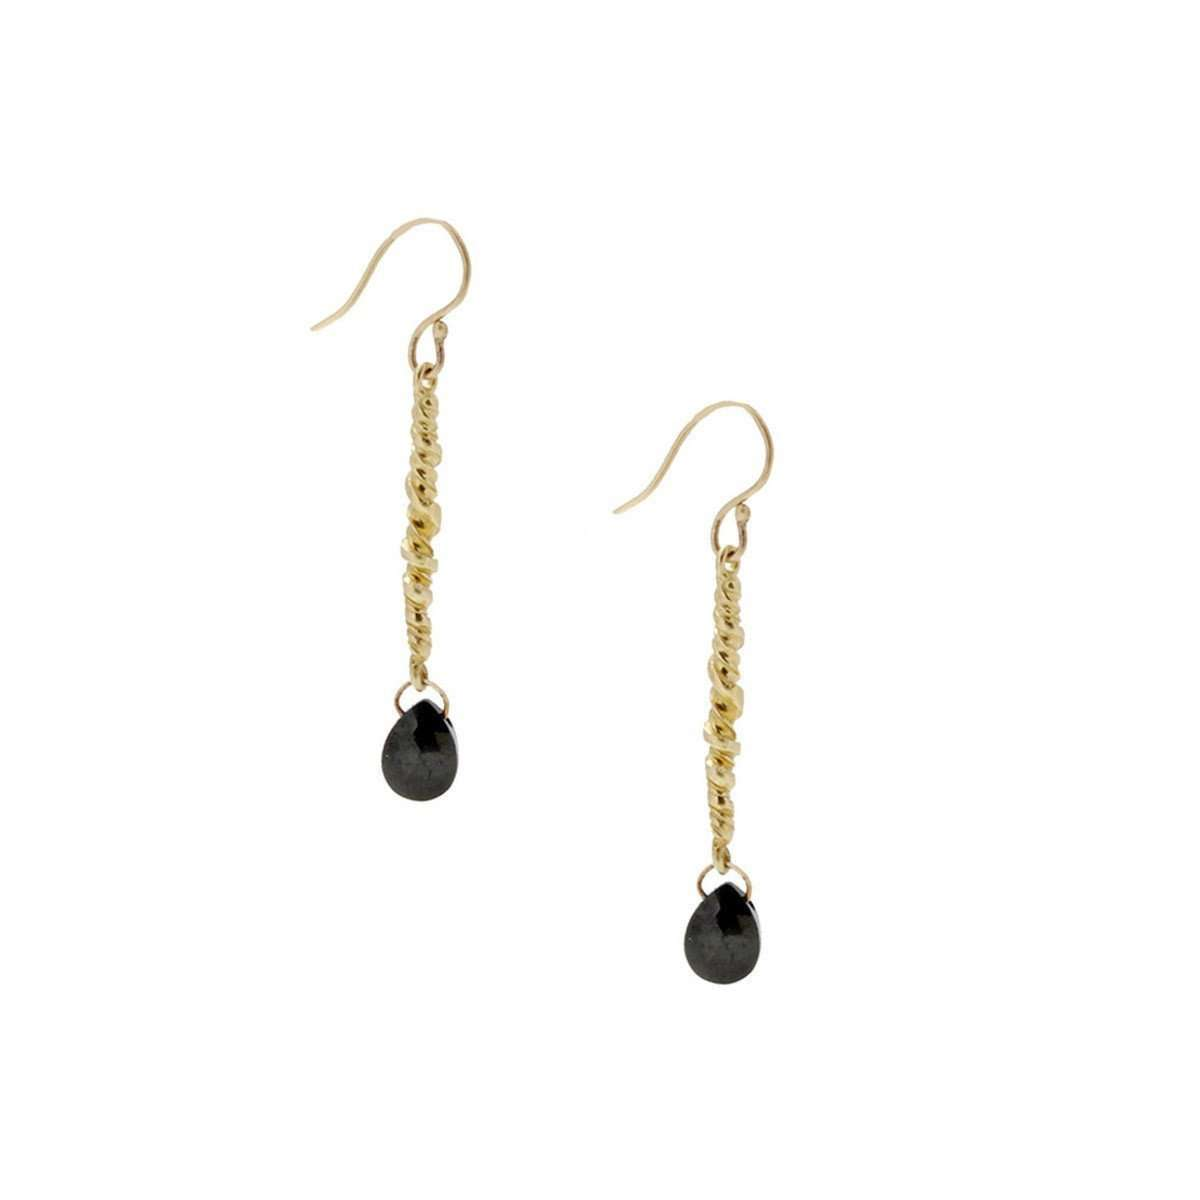 Dangle Twist Short With Jet-Lori Kaplan Jewelry-JewelStreet US